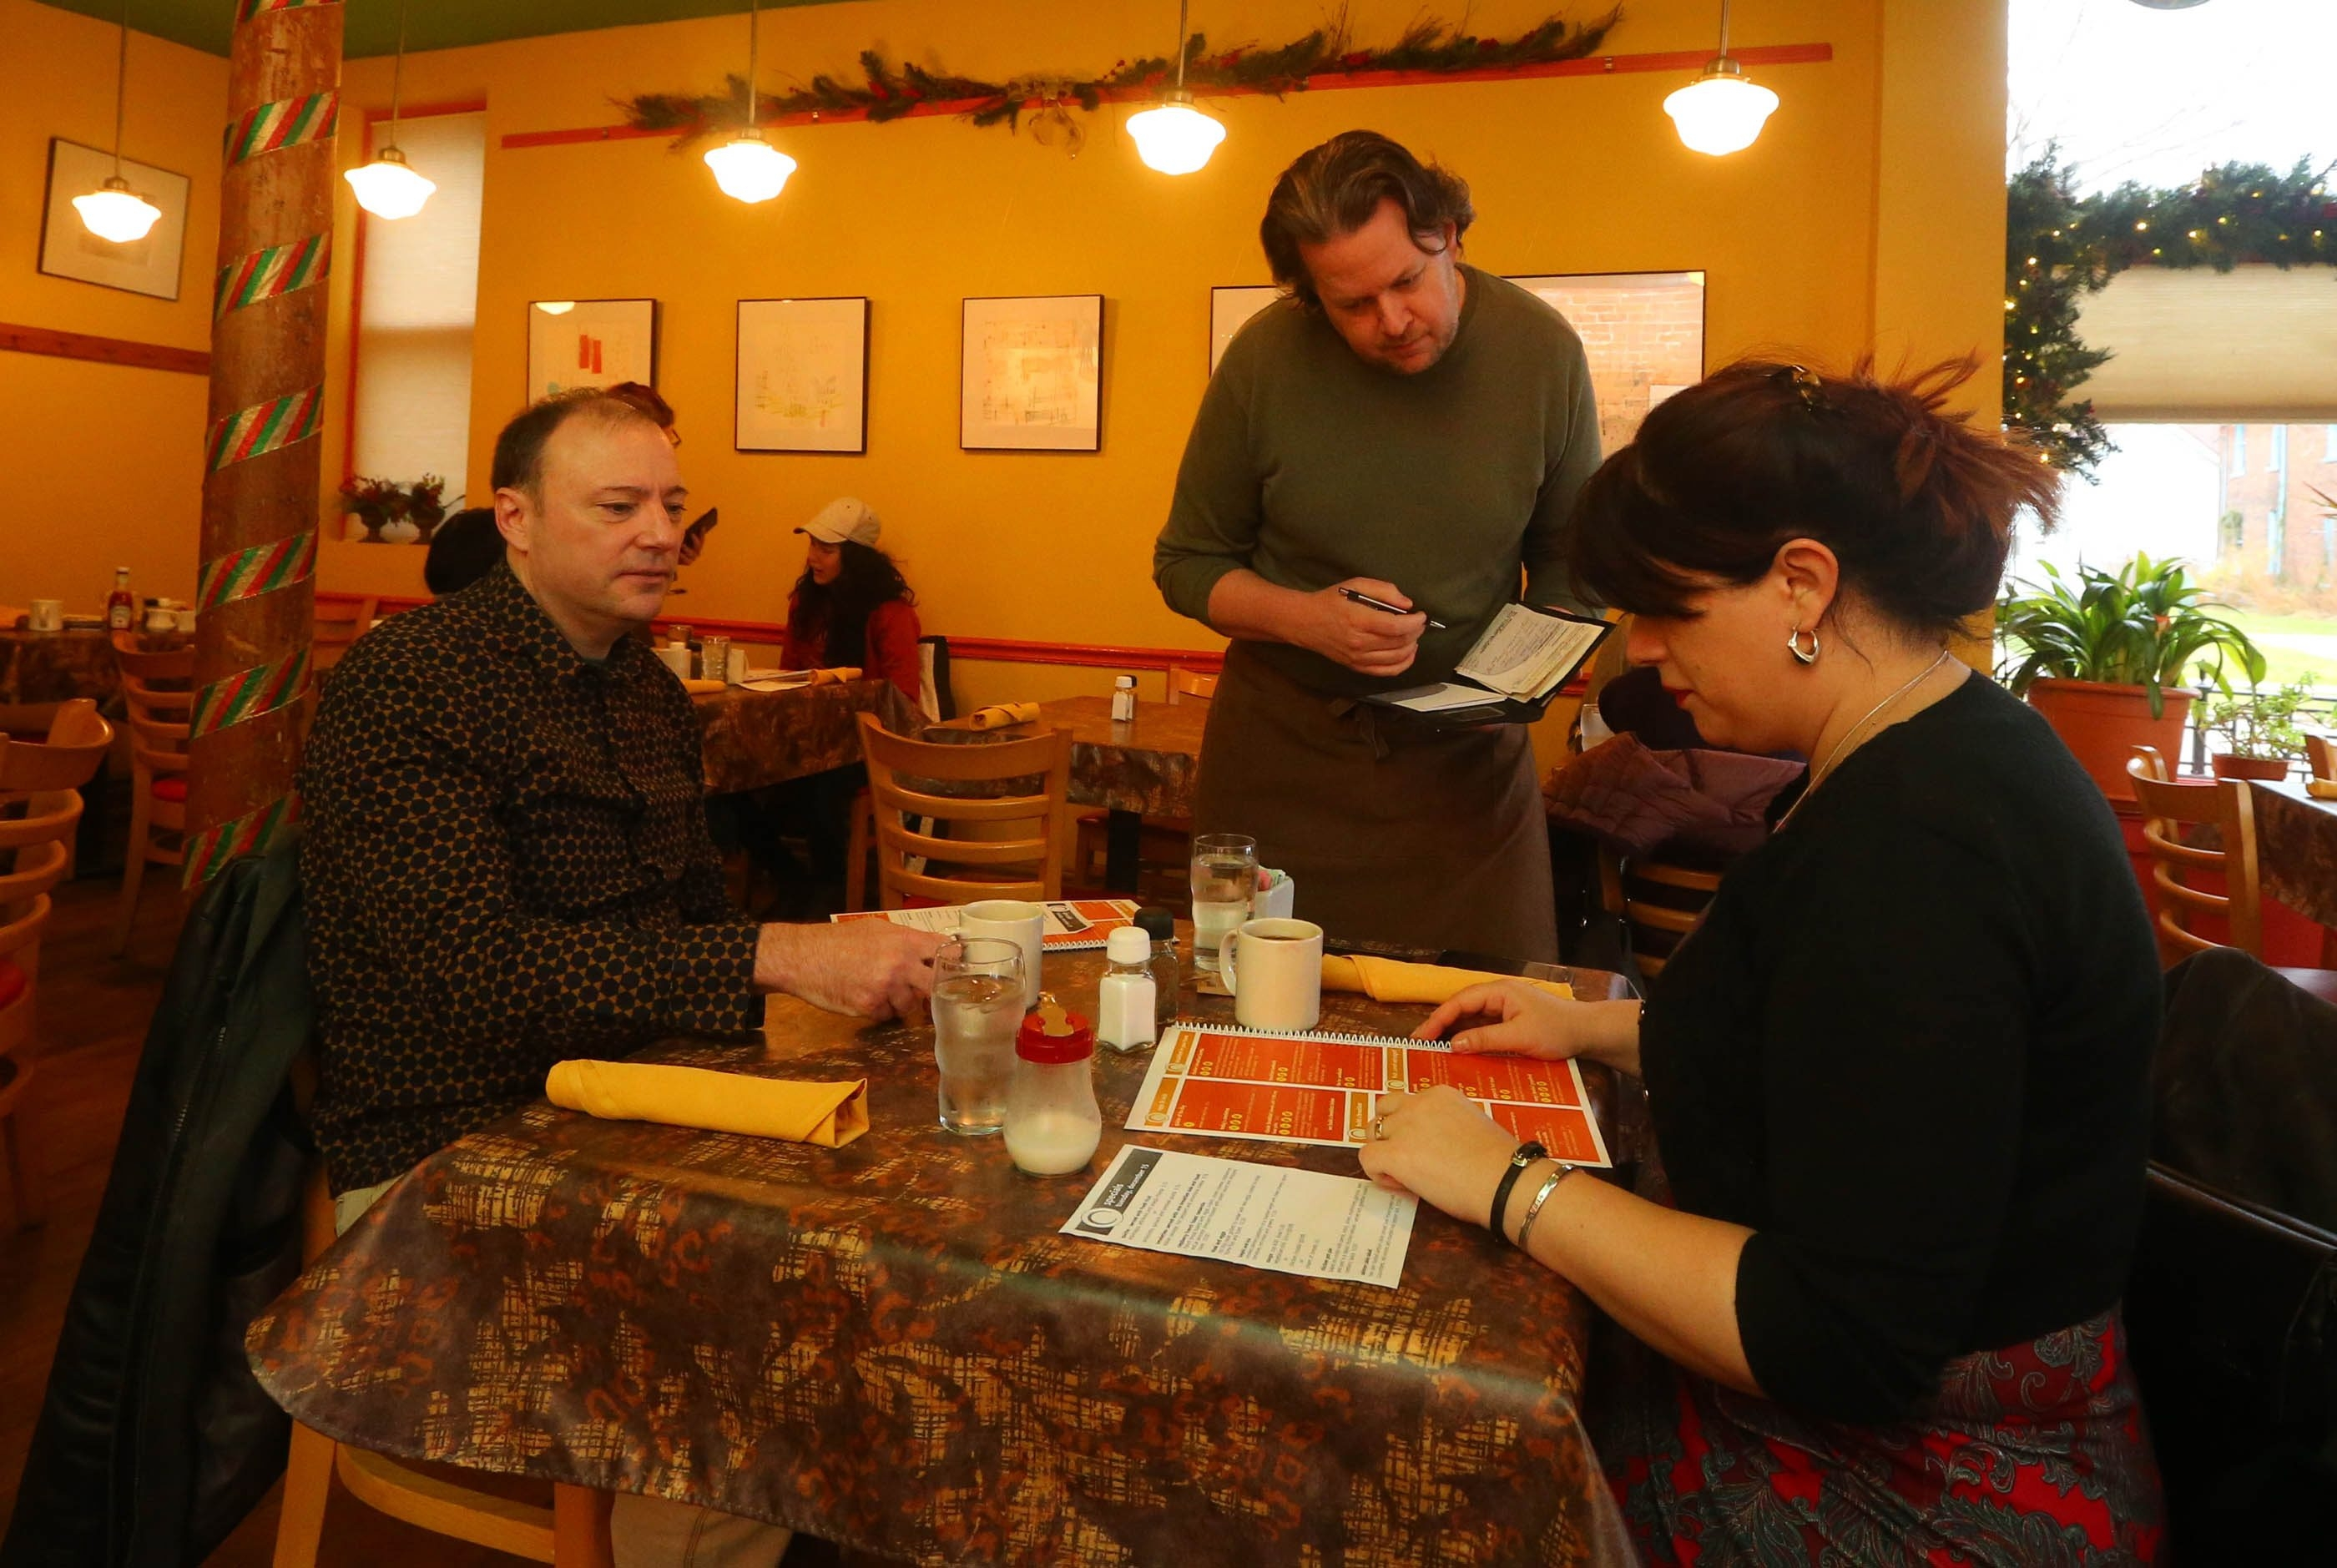 """Ted Gates, a server at Betty's on Virginia Street in Buffalo, waits on Ed and Eka Pudlo, visitors from Chicago. Because of higher wage costs, a co-owner says, the restaurant is """"trying to figure out how we can survive"""" while being fair to both staff members and customers."""